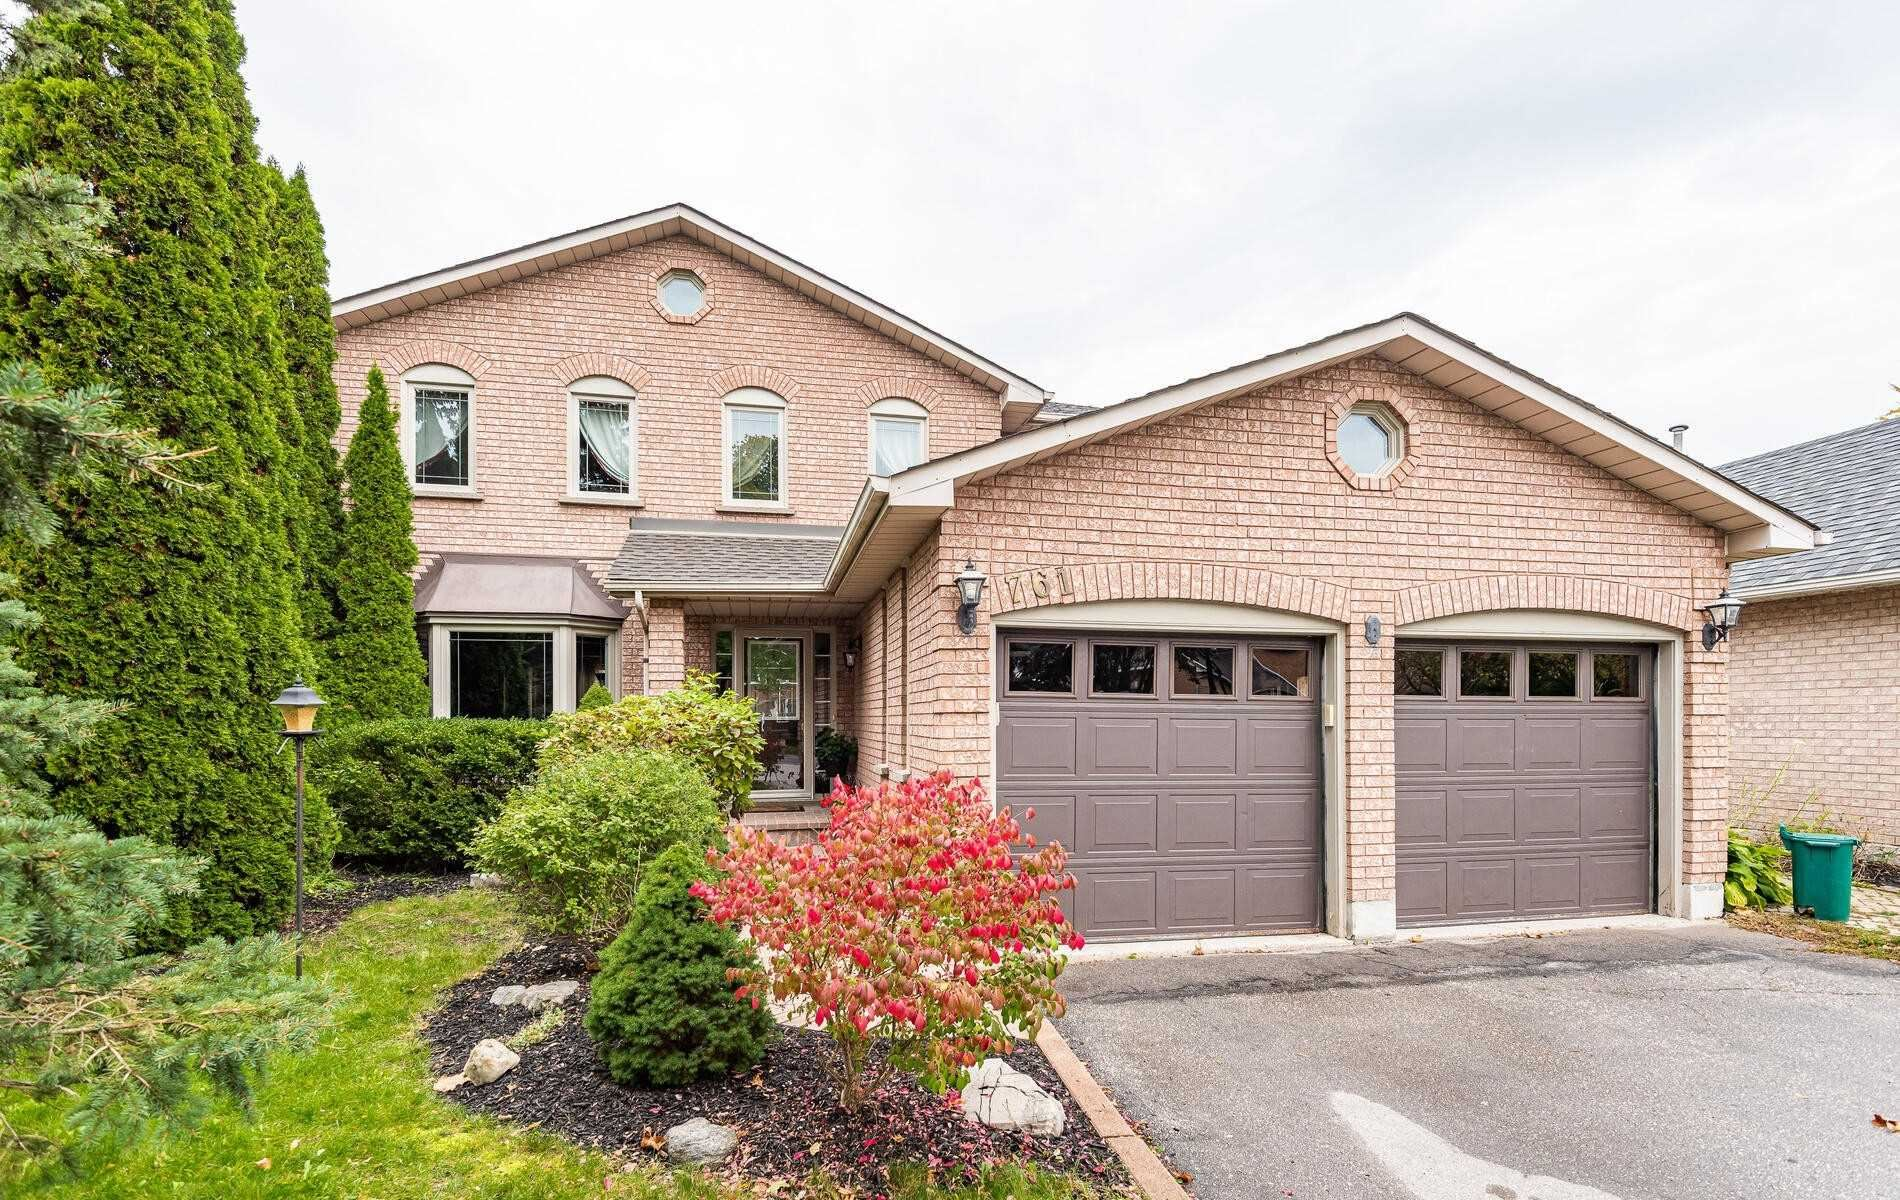 761 College Manor Dr, Newmarket, ON L3Y8G6 - MLS#: N5409620